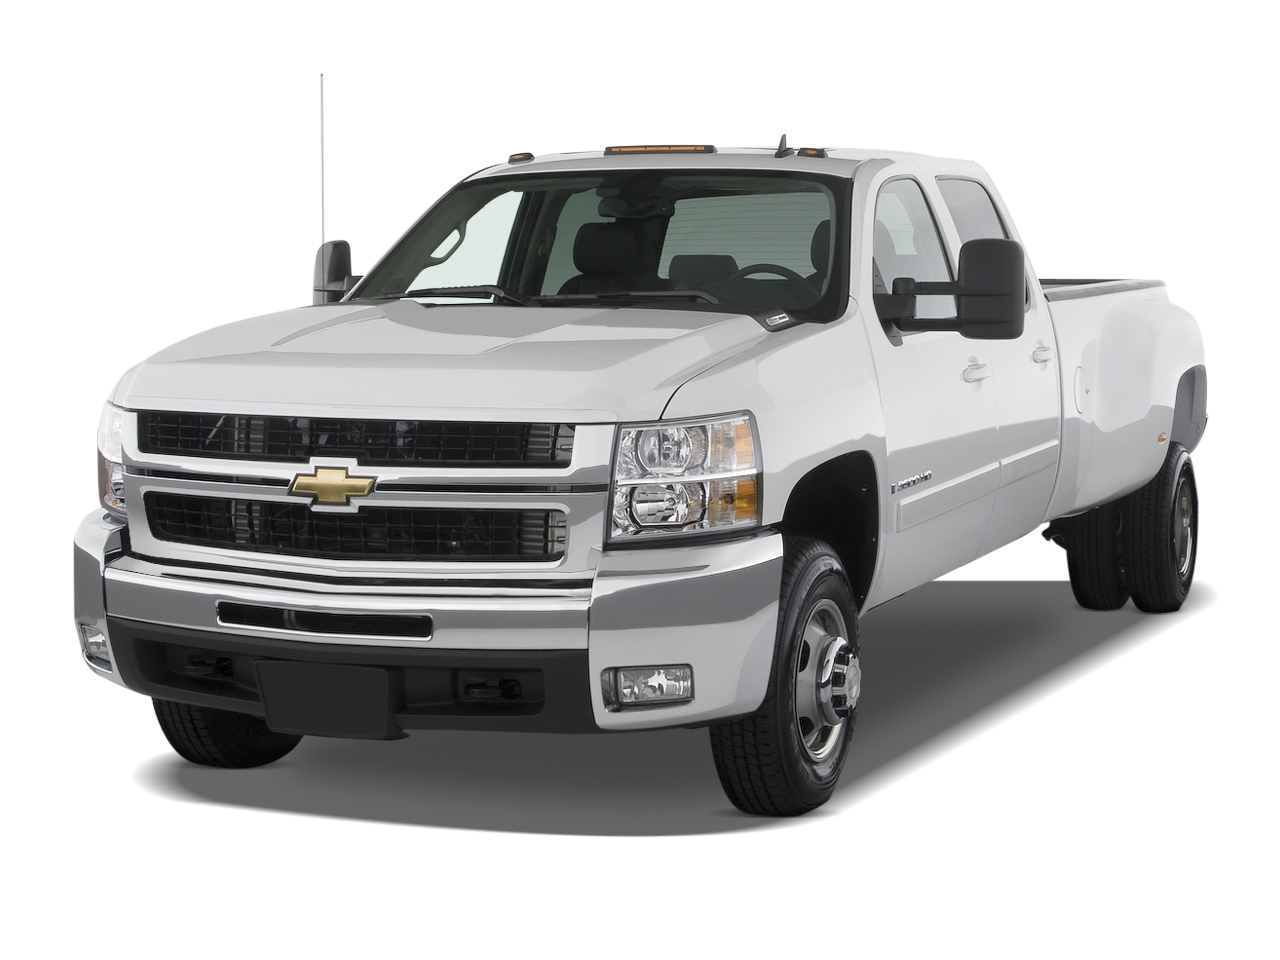 2013 chevy 3500 towing capacity autos post. Black Bedroom Furniture Sets. Home Design Ideas